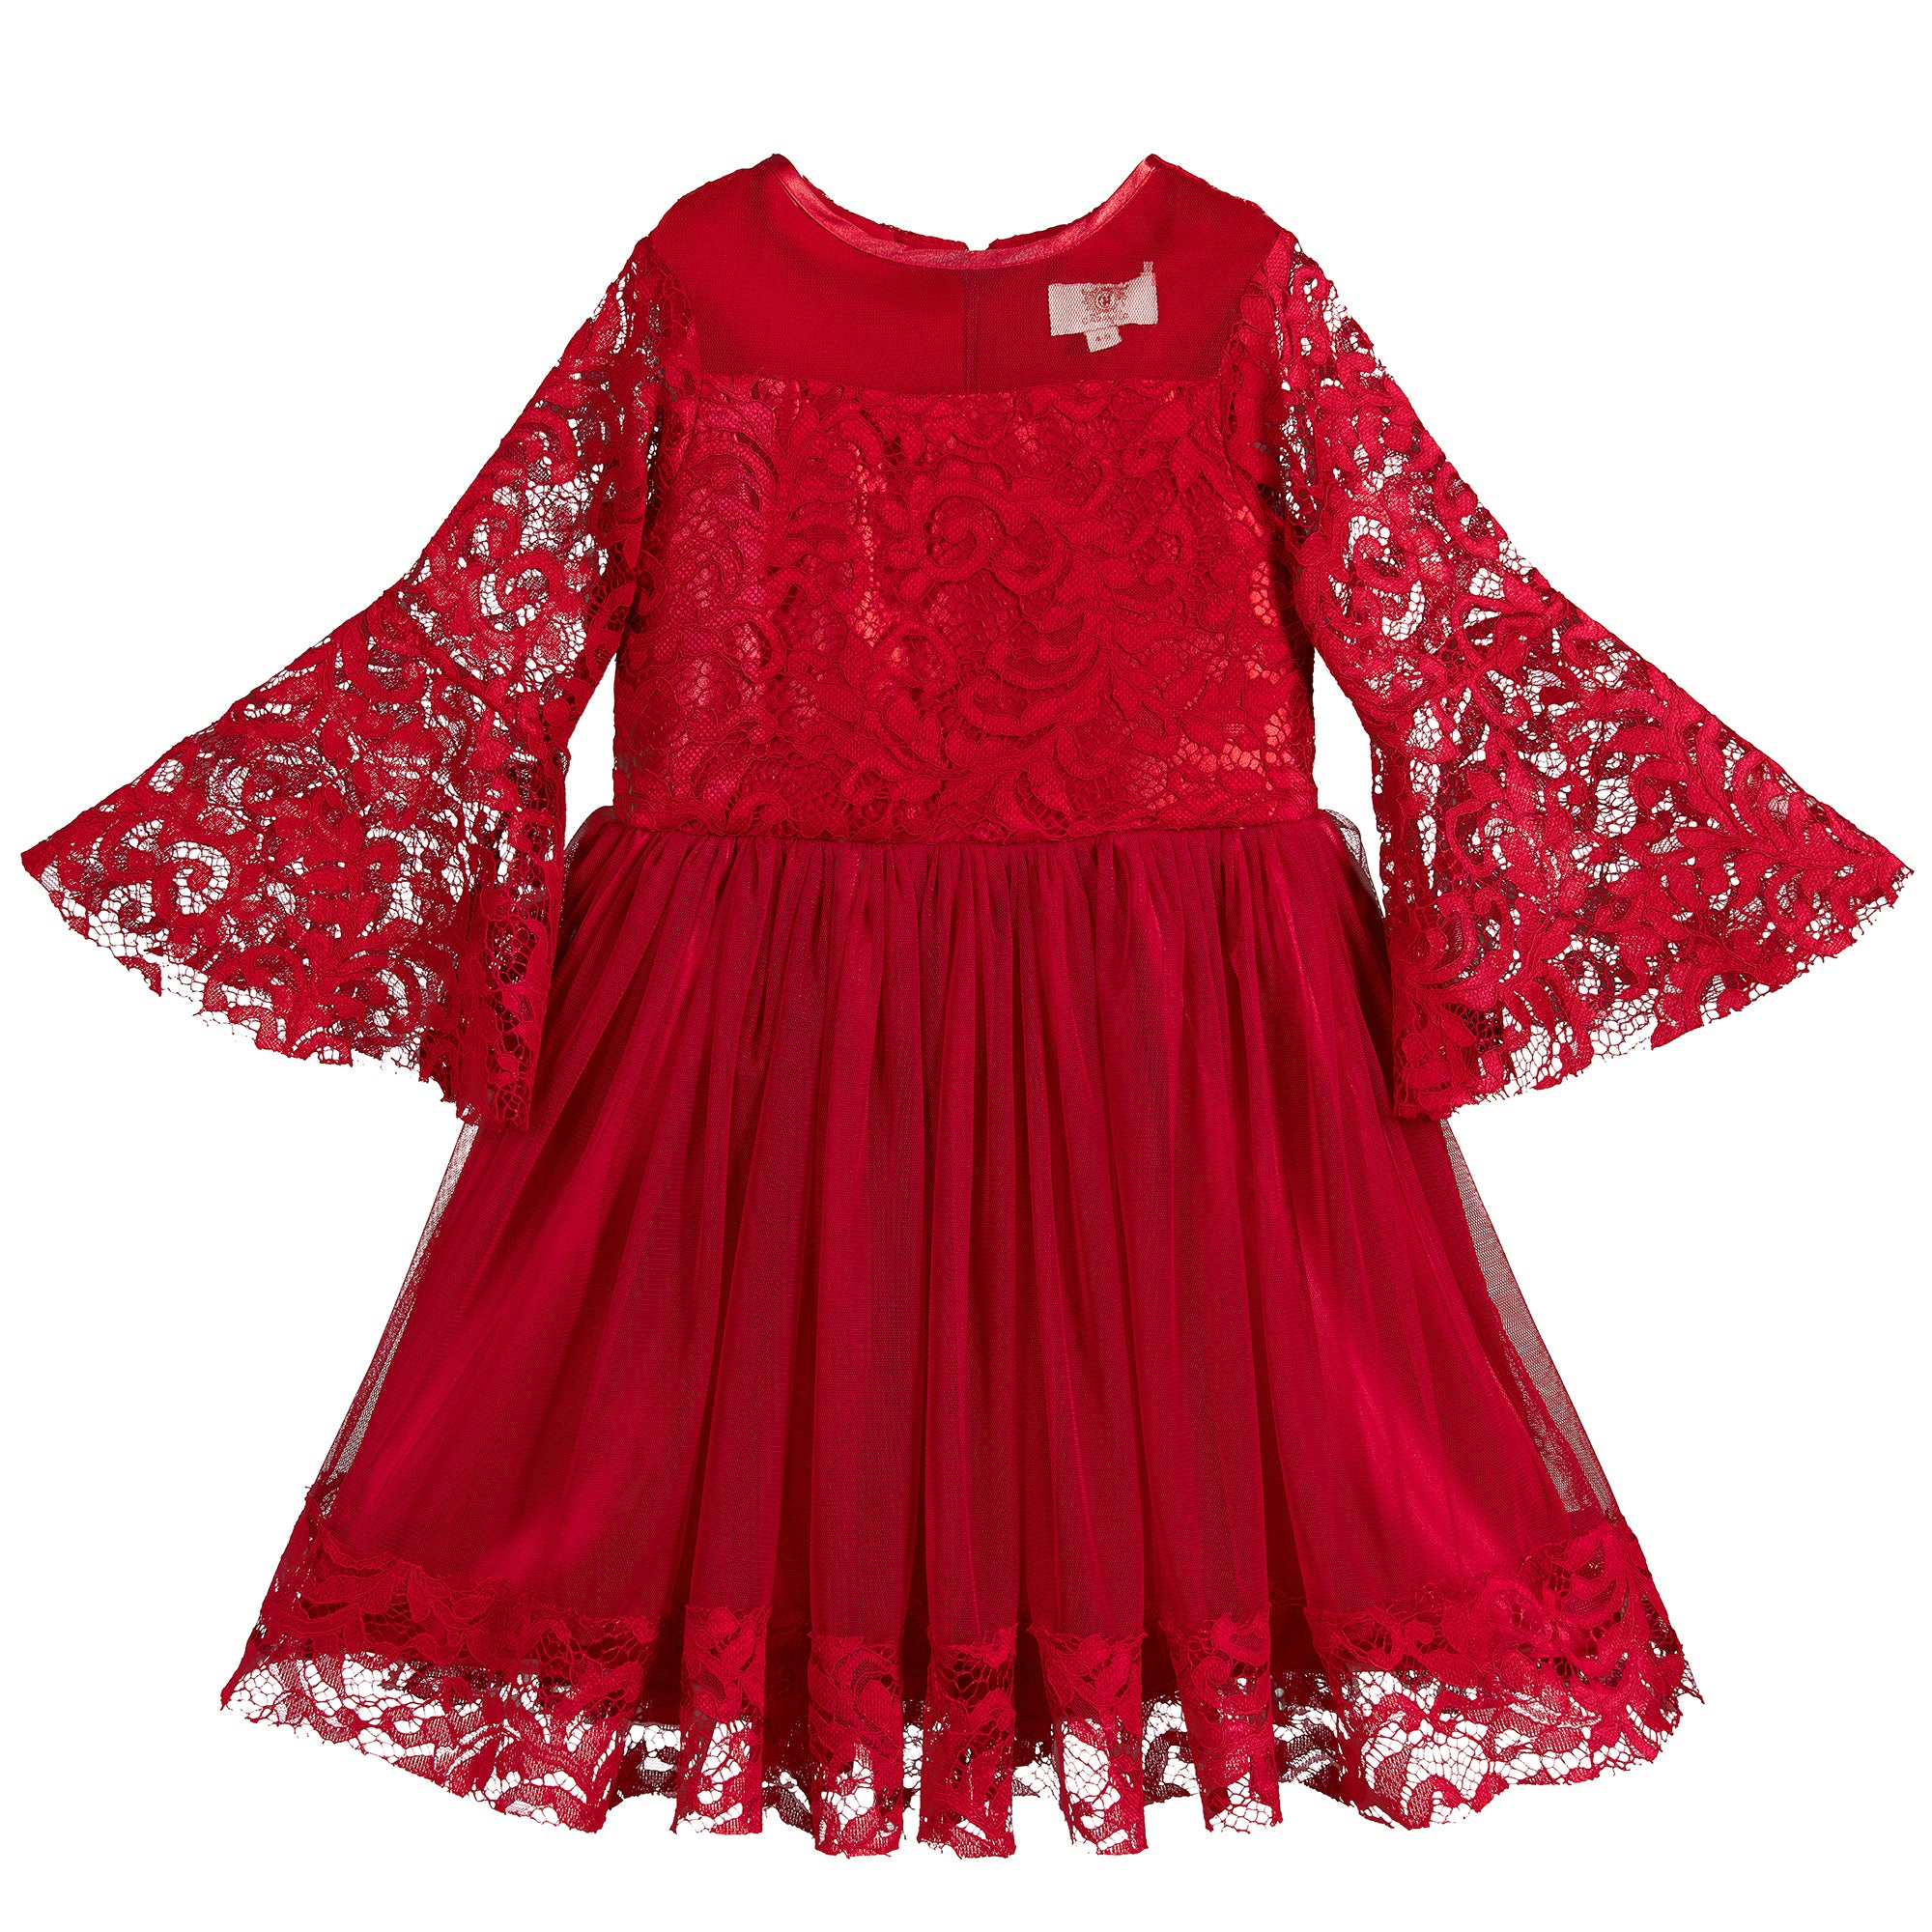 Caramelo Kids Red Lace Dress